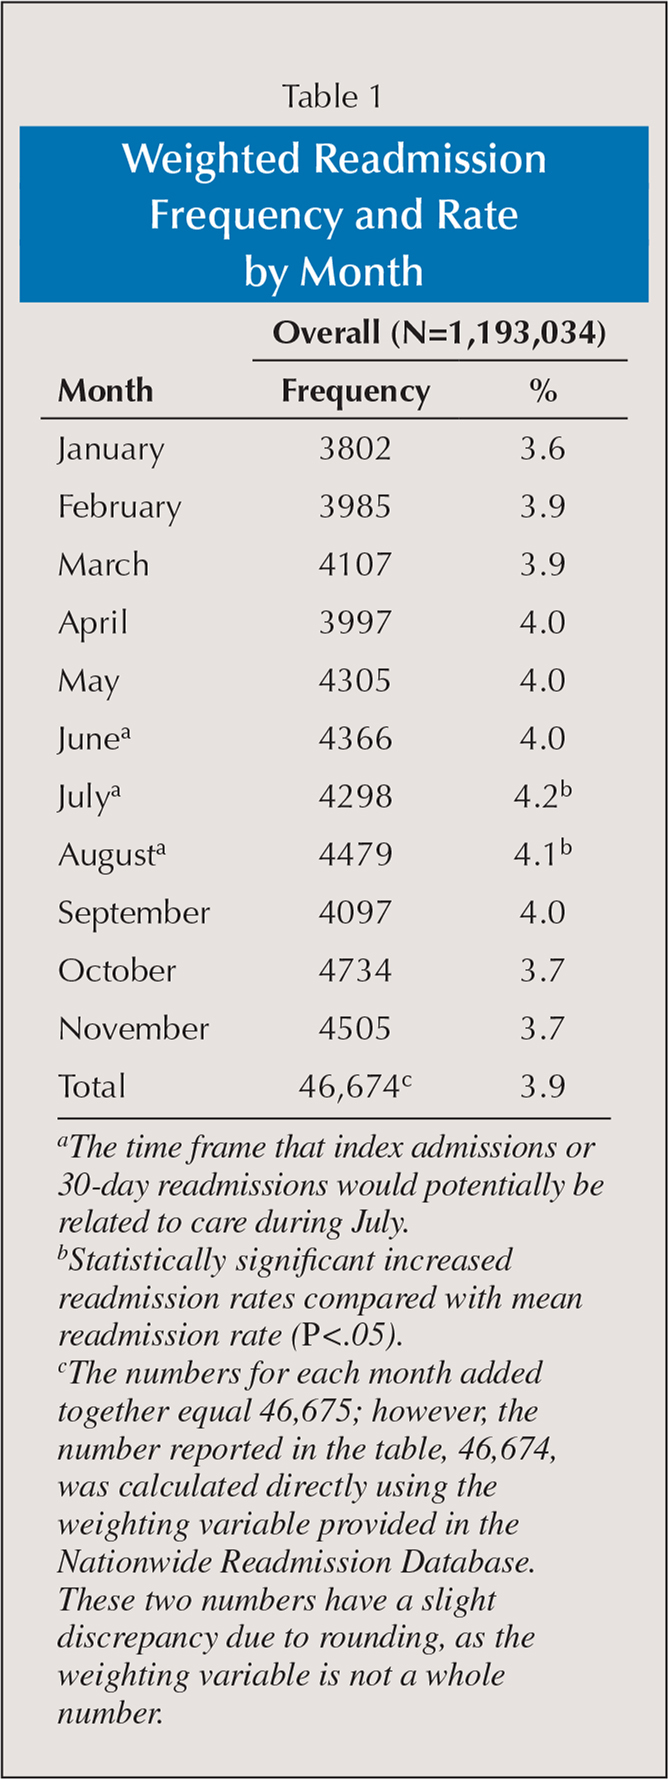 Weighted Readmission Frequency and Rate by Month